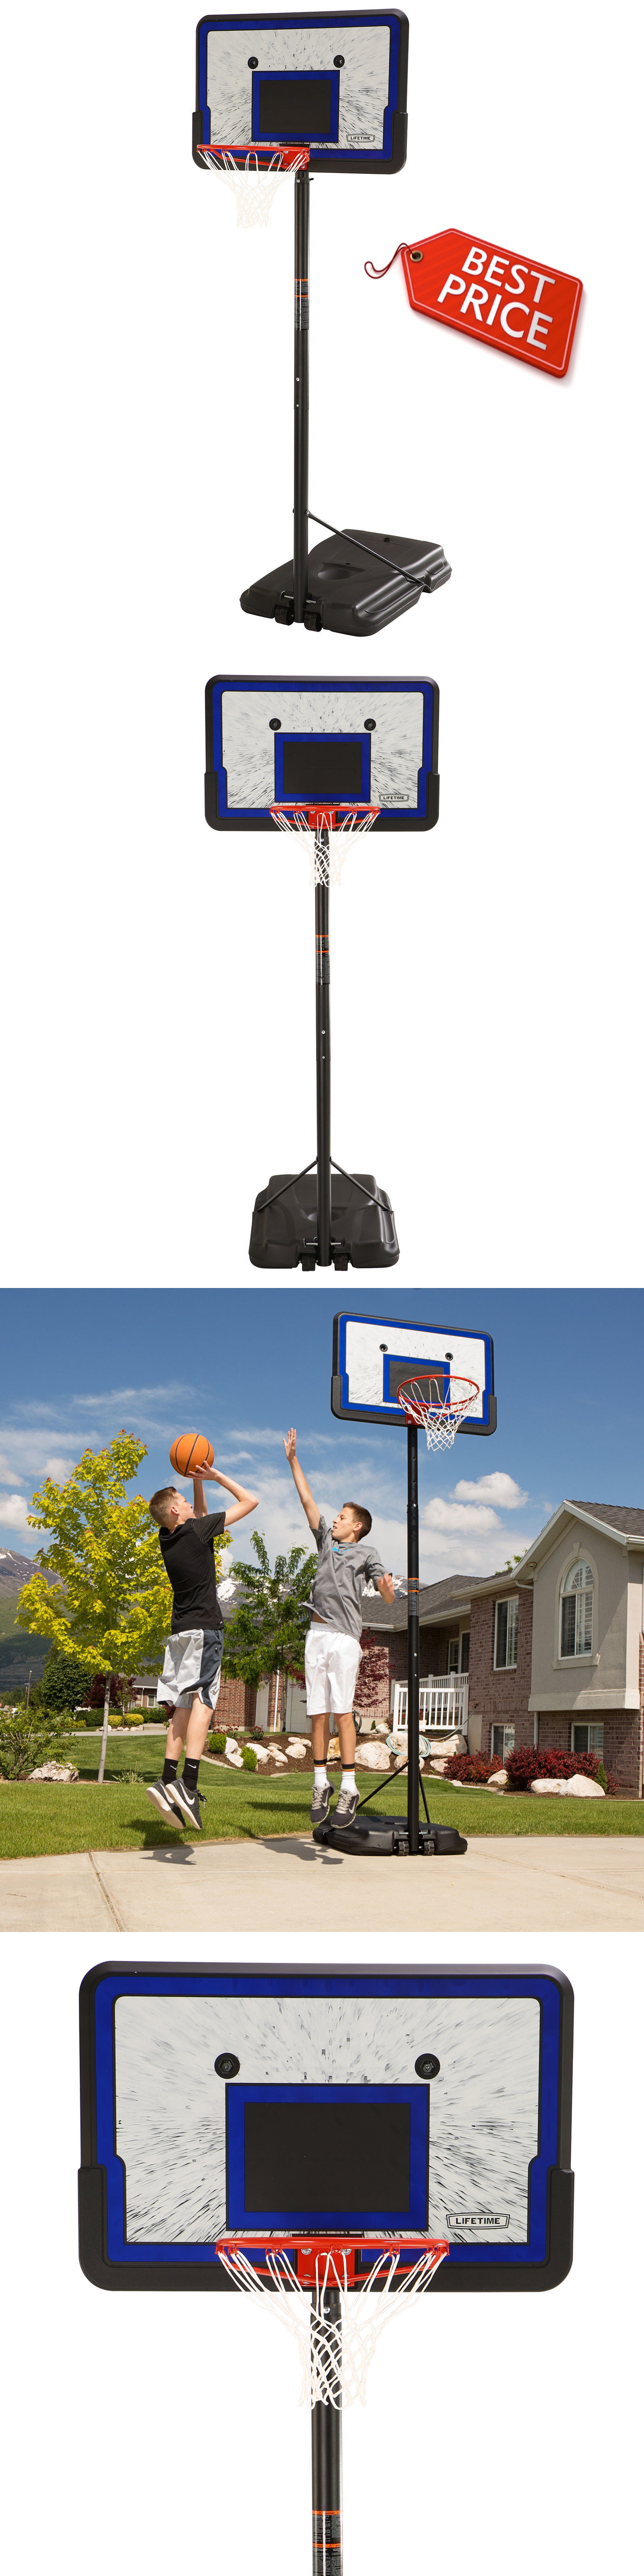 backboard systems 21196 adjustable height basketball system 1221